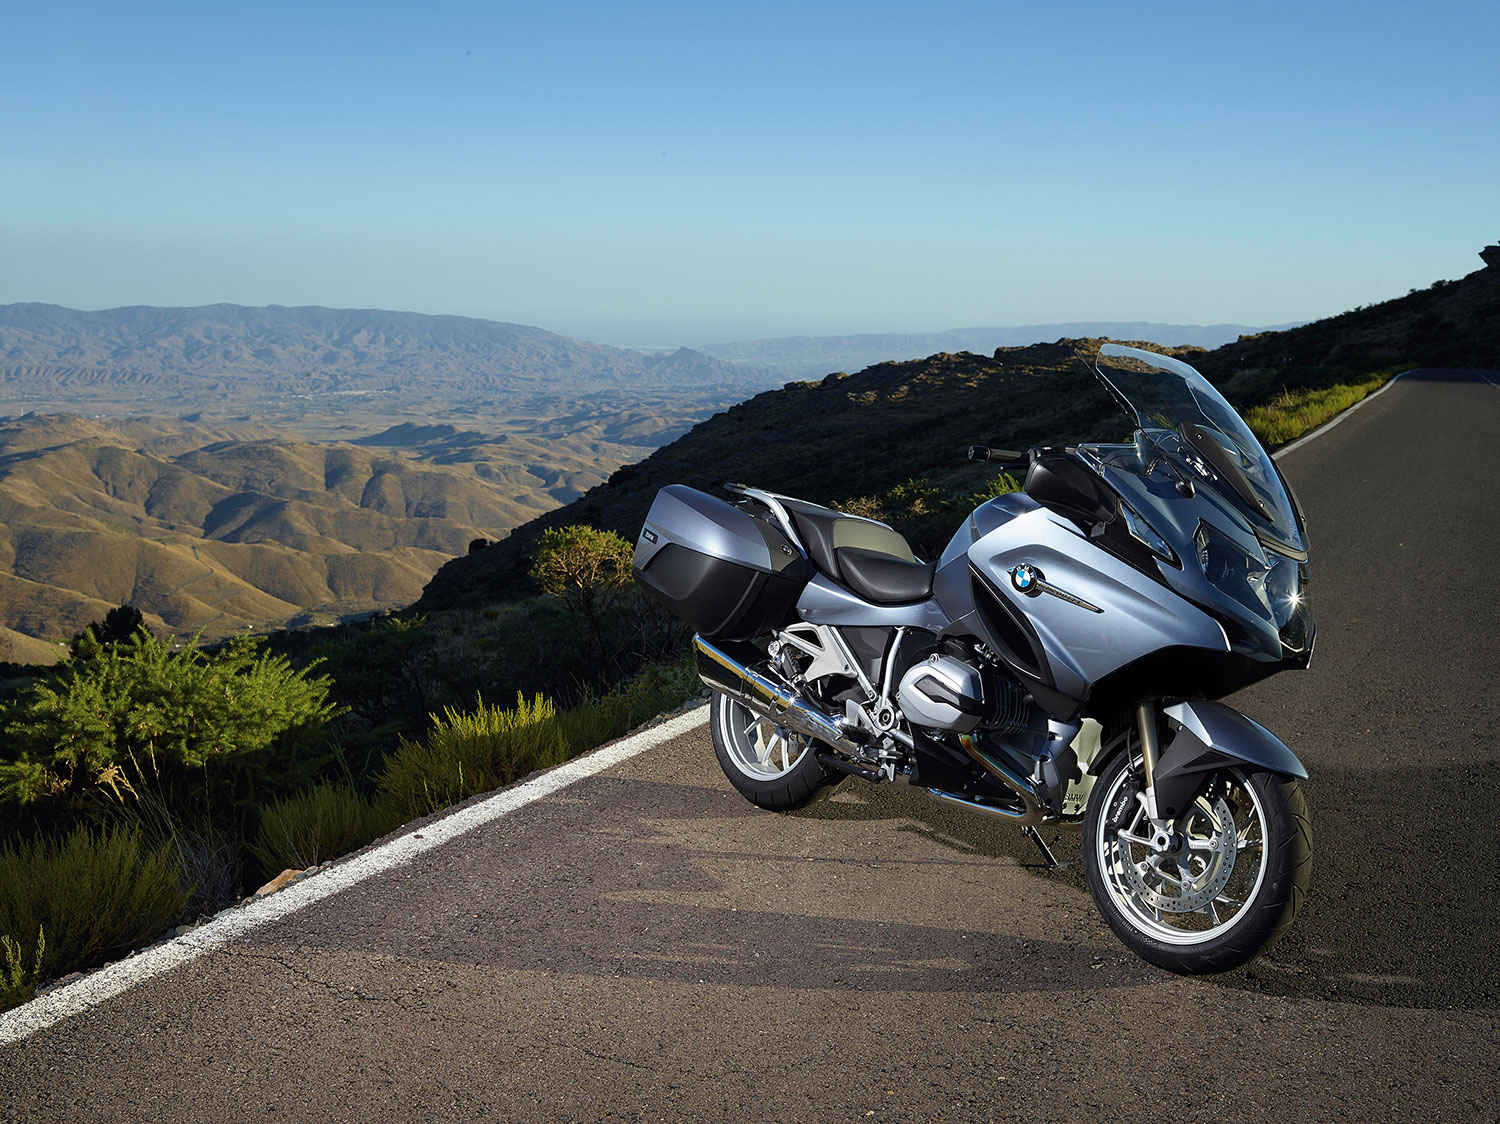 Bmw R1200rt Audio System Manual Best 2014 Wiring Diagram The New Lc Sophisticated Design Performance And